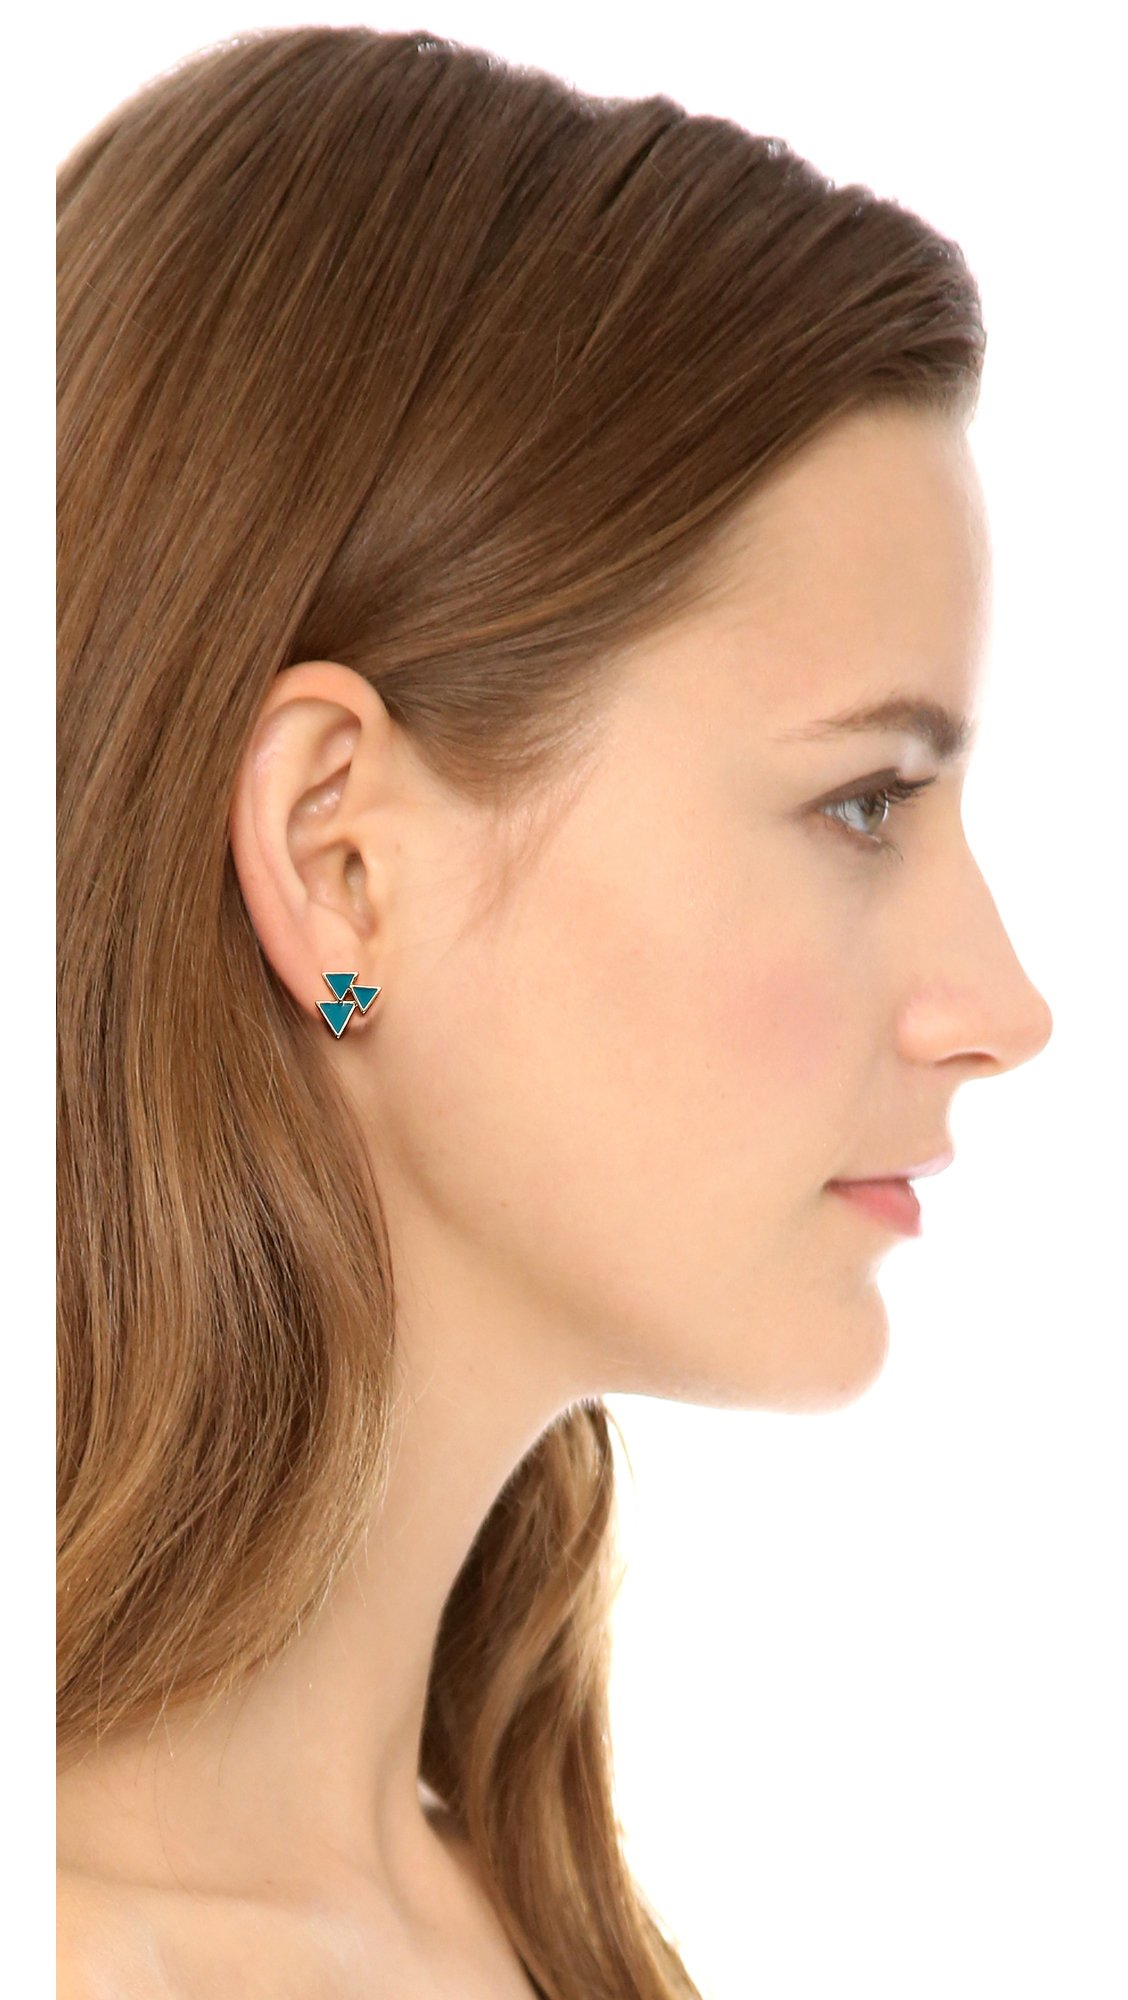 House of Harlow 1960 Tessellation Stud Earring Set - Gold/Black in Gold/Turquoise (Metallic)